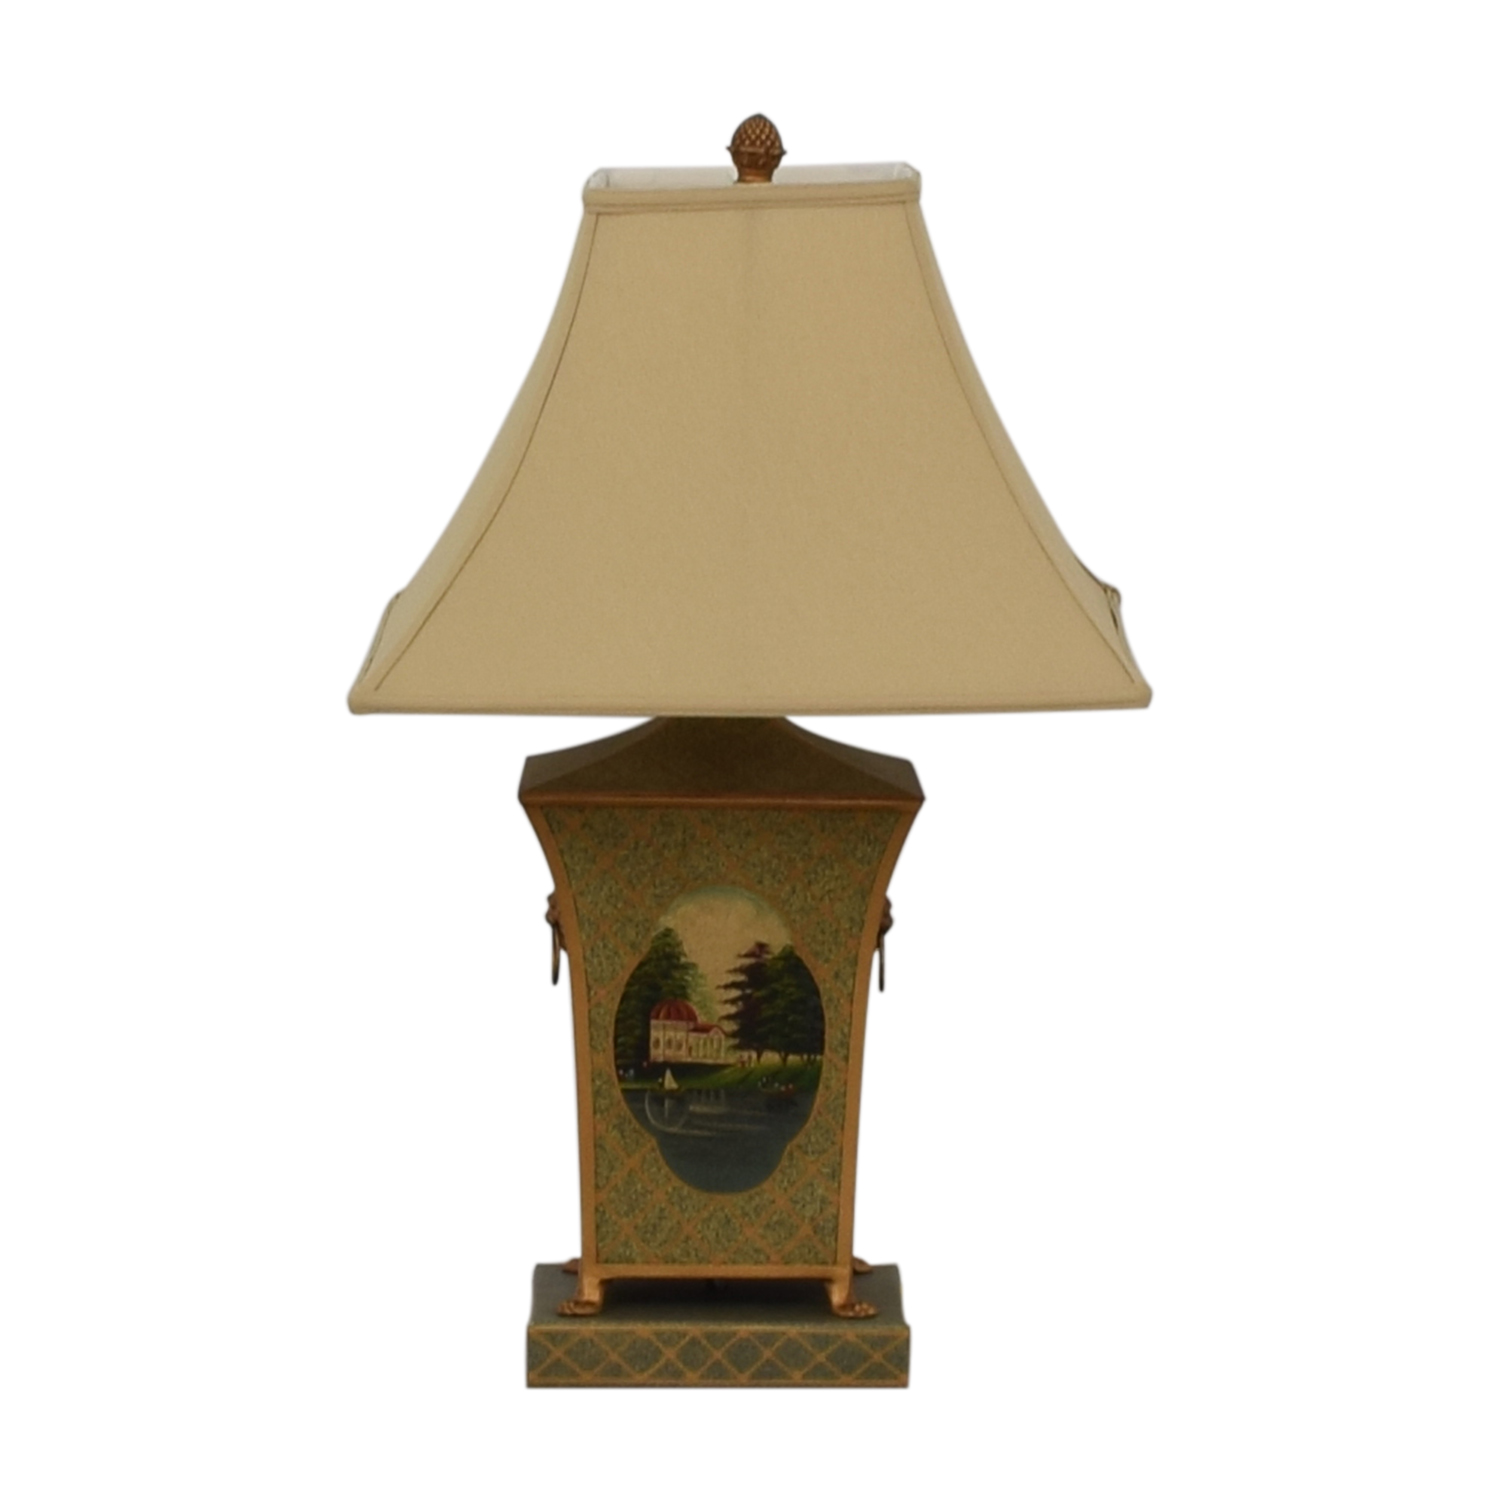 Decorative Crafts Decorative Crafts Table Lamp price